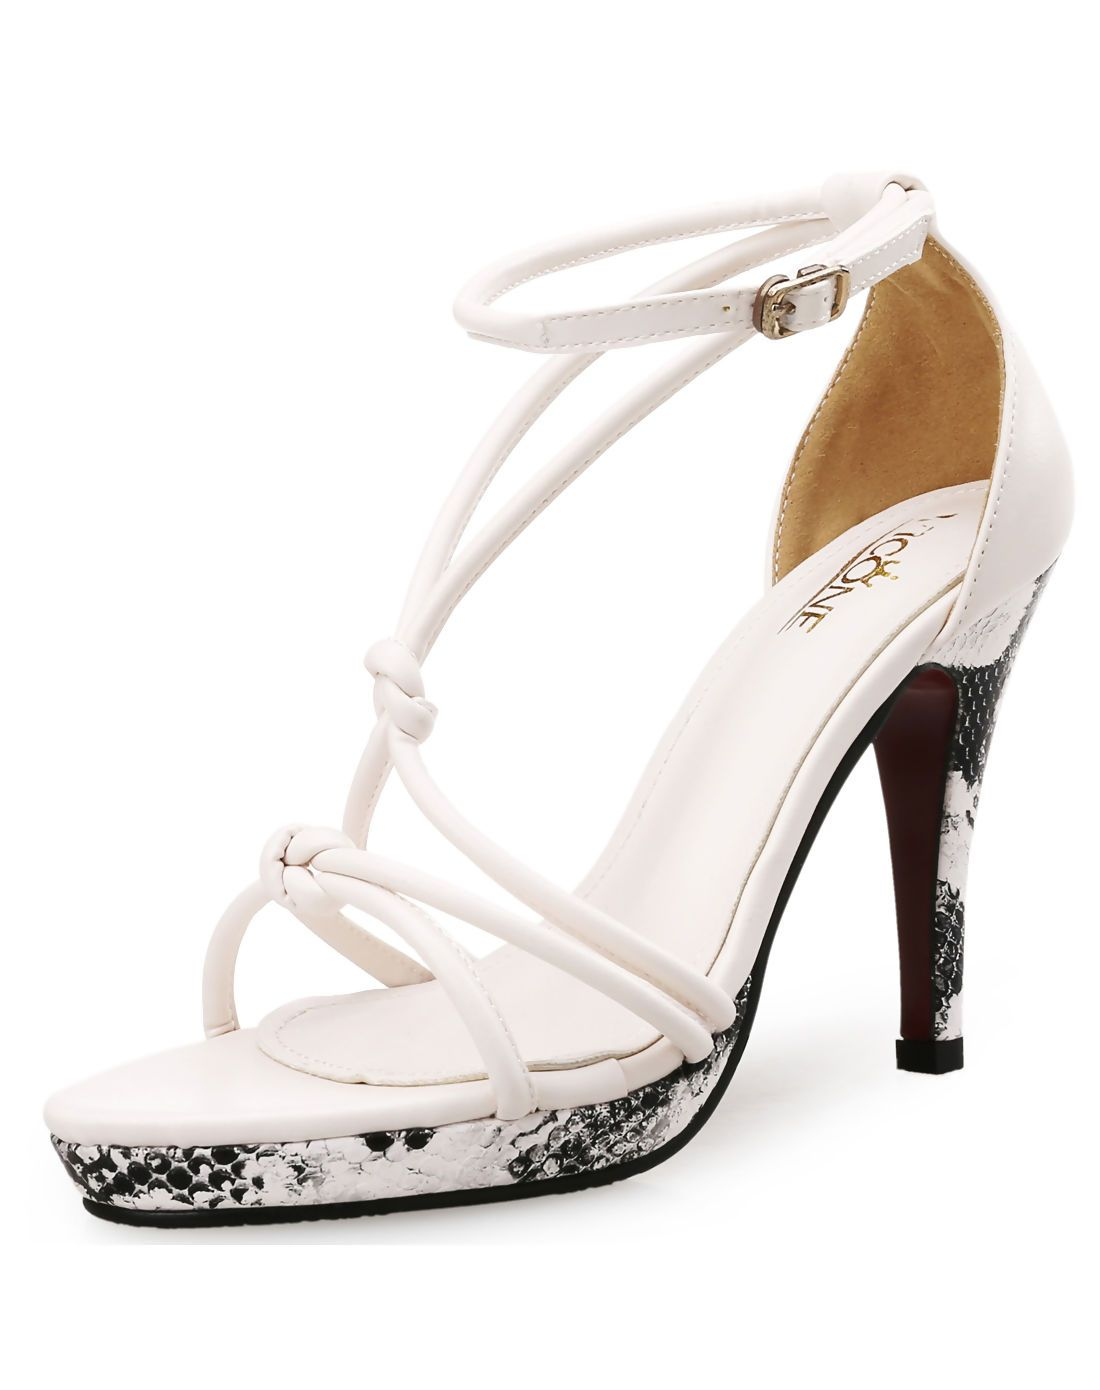 69fbbf0de7d5  AdoreWe  VIPme Sandals - VICONE White Snake Patent knot Ankle Strap High  Heel Sandals